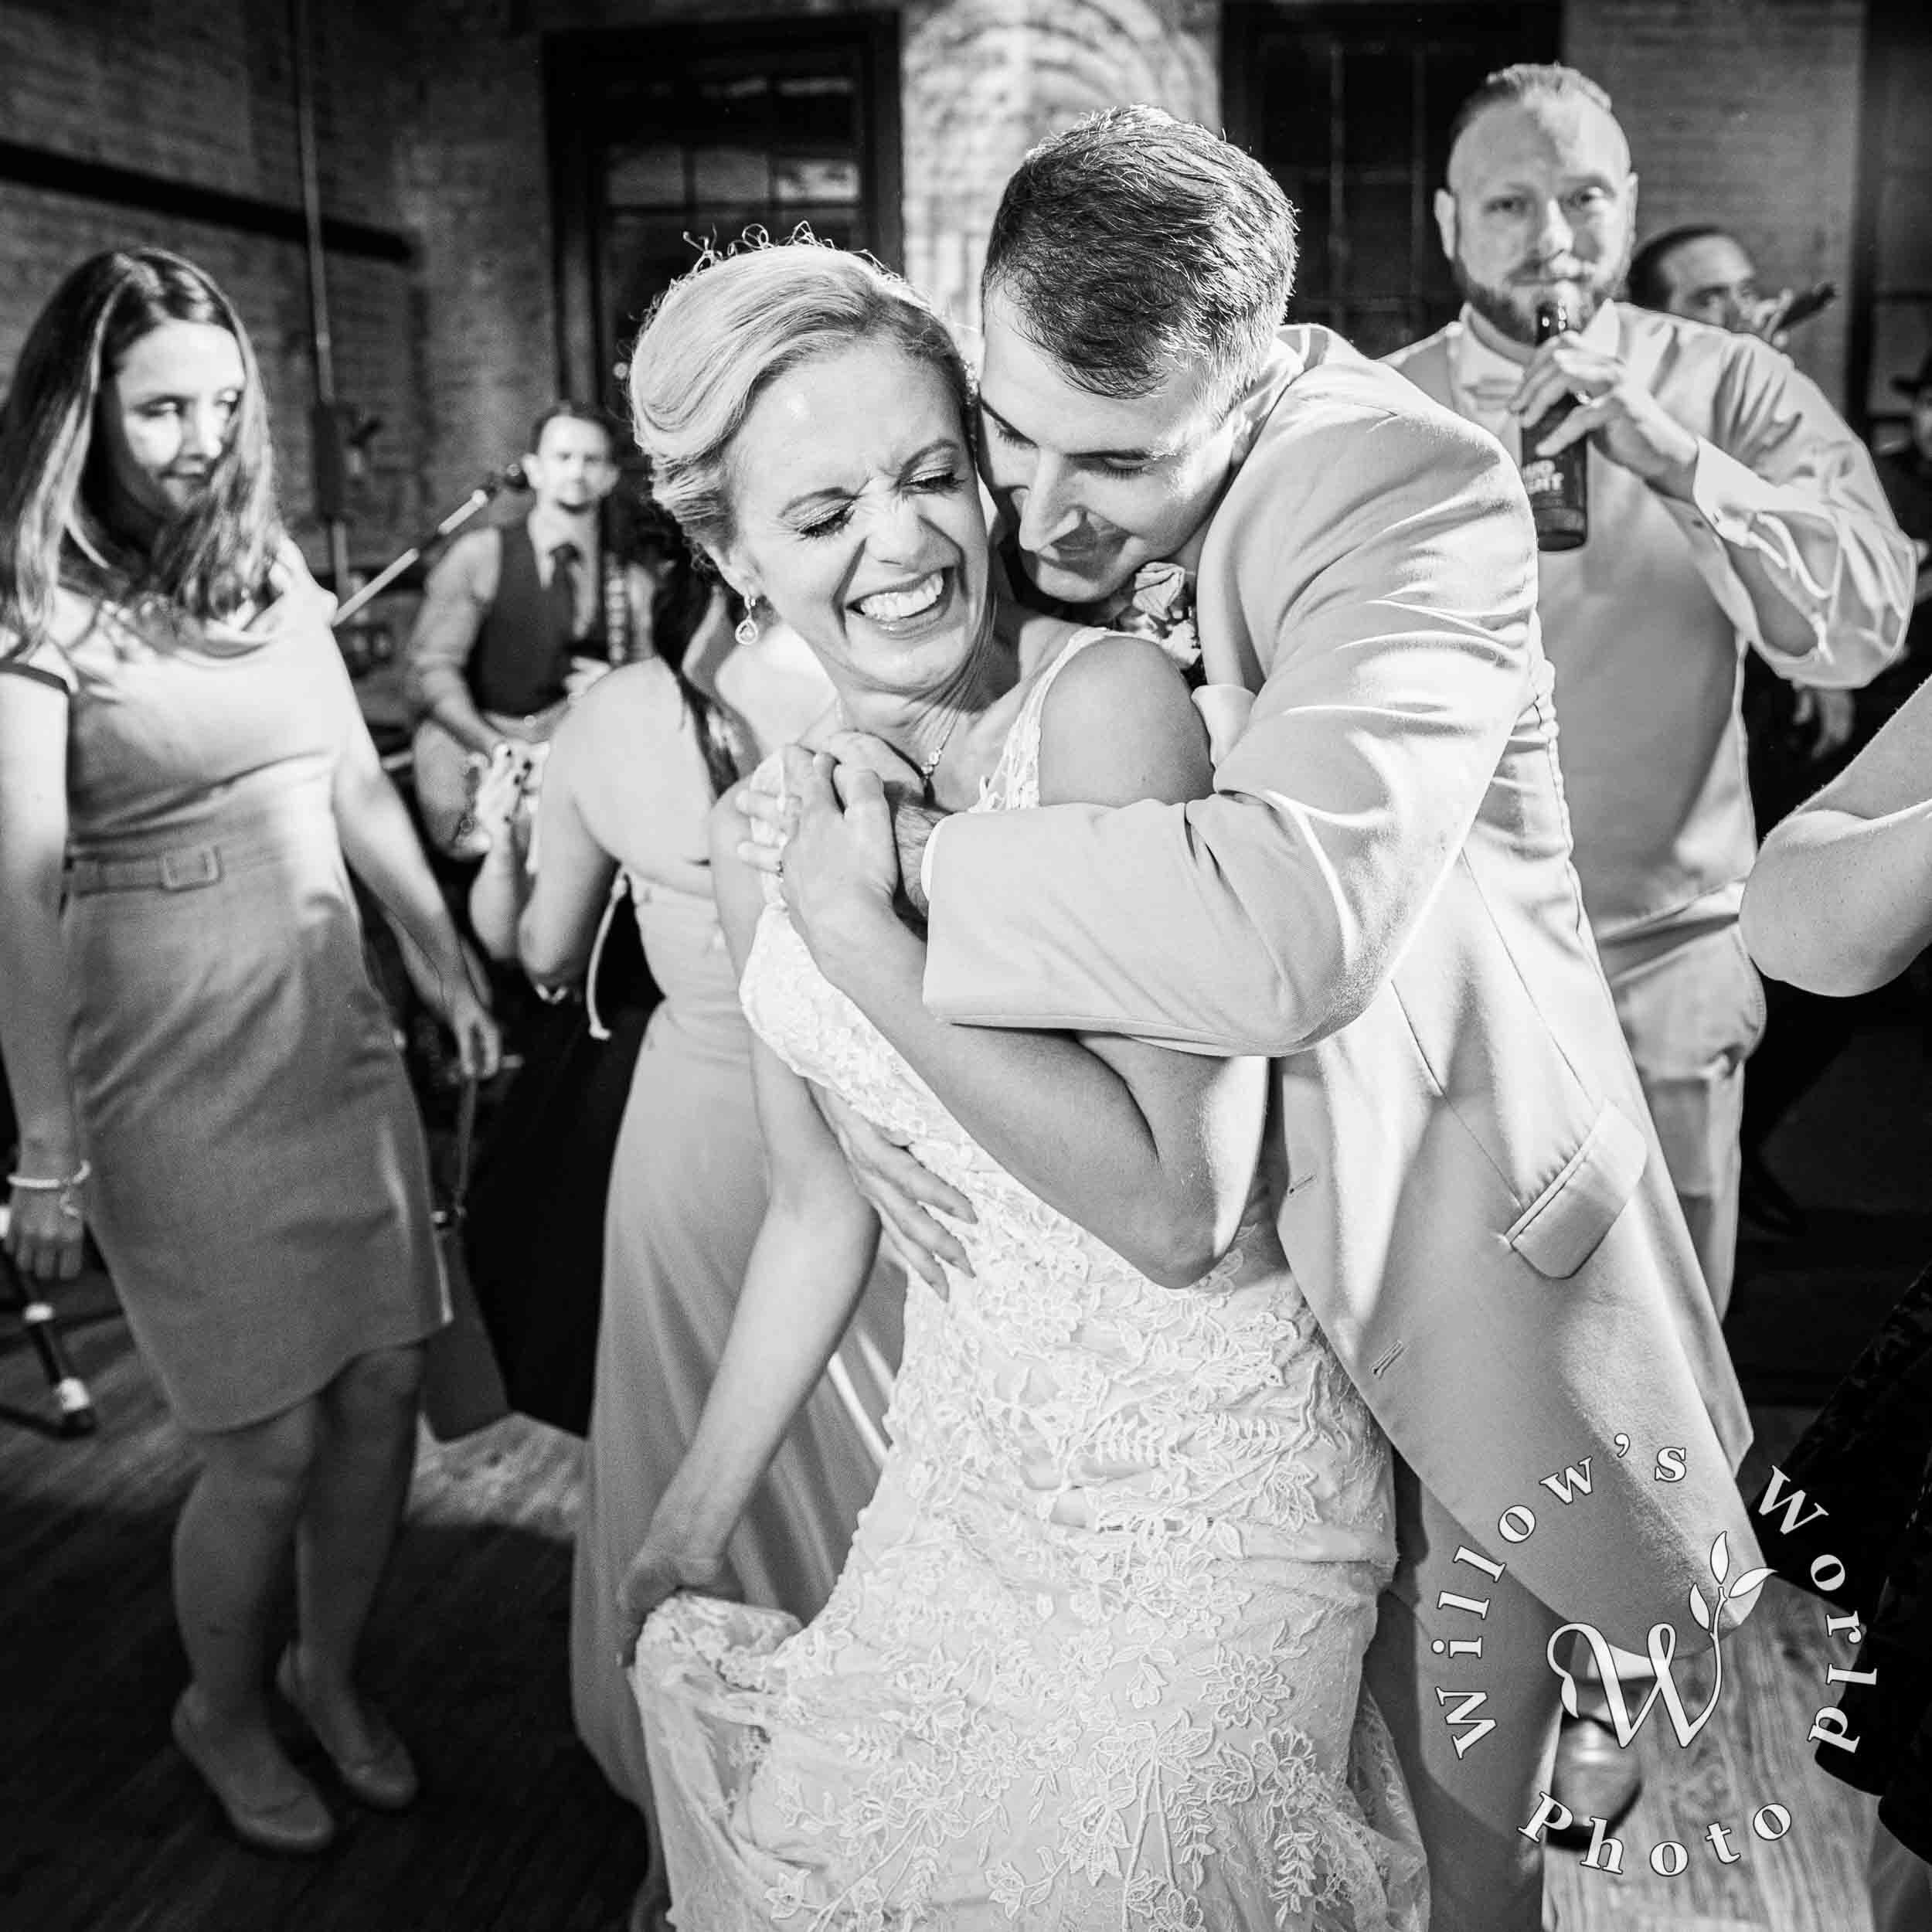 101-The-Chicory-New-Orleans-Wedding-Reception-Photo-Willows-World-Photo.jpg